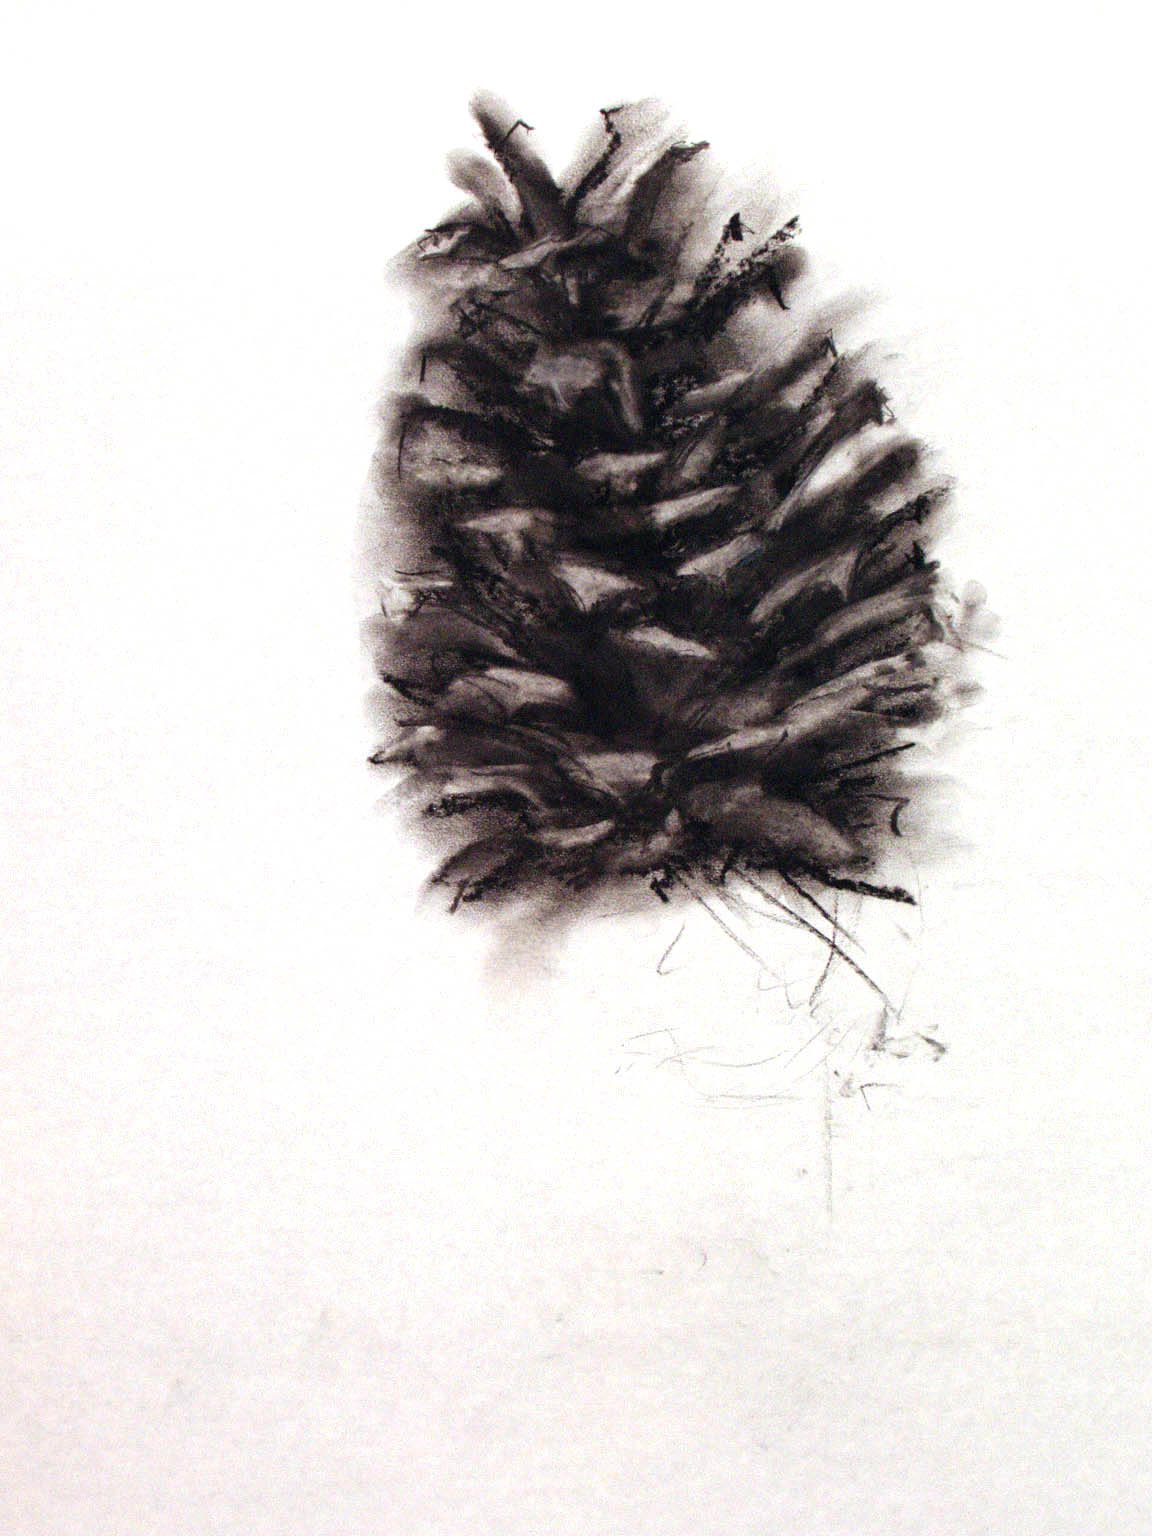 """PINE CONE     14"""" x 20"""" — Charcoal on drawing paper, 20"""" x 24"""" framed    $1200.00"""